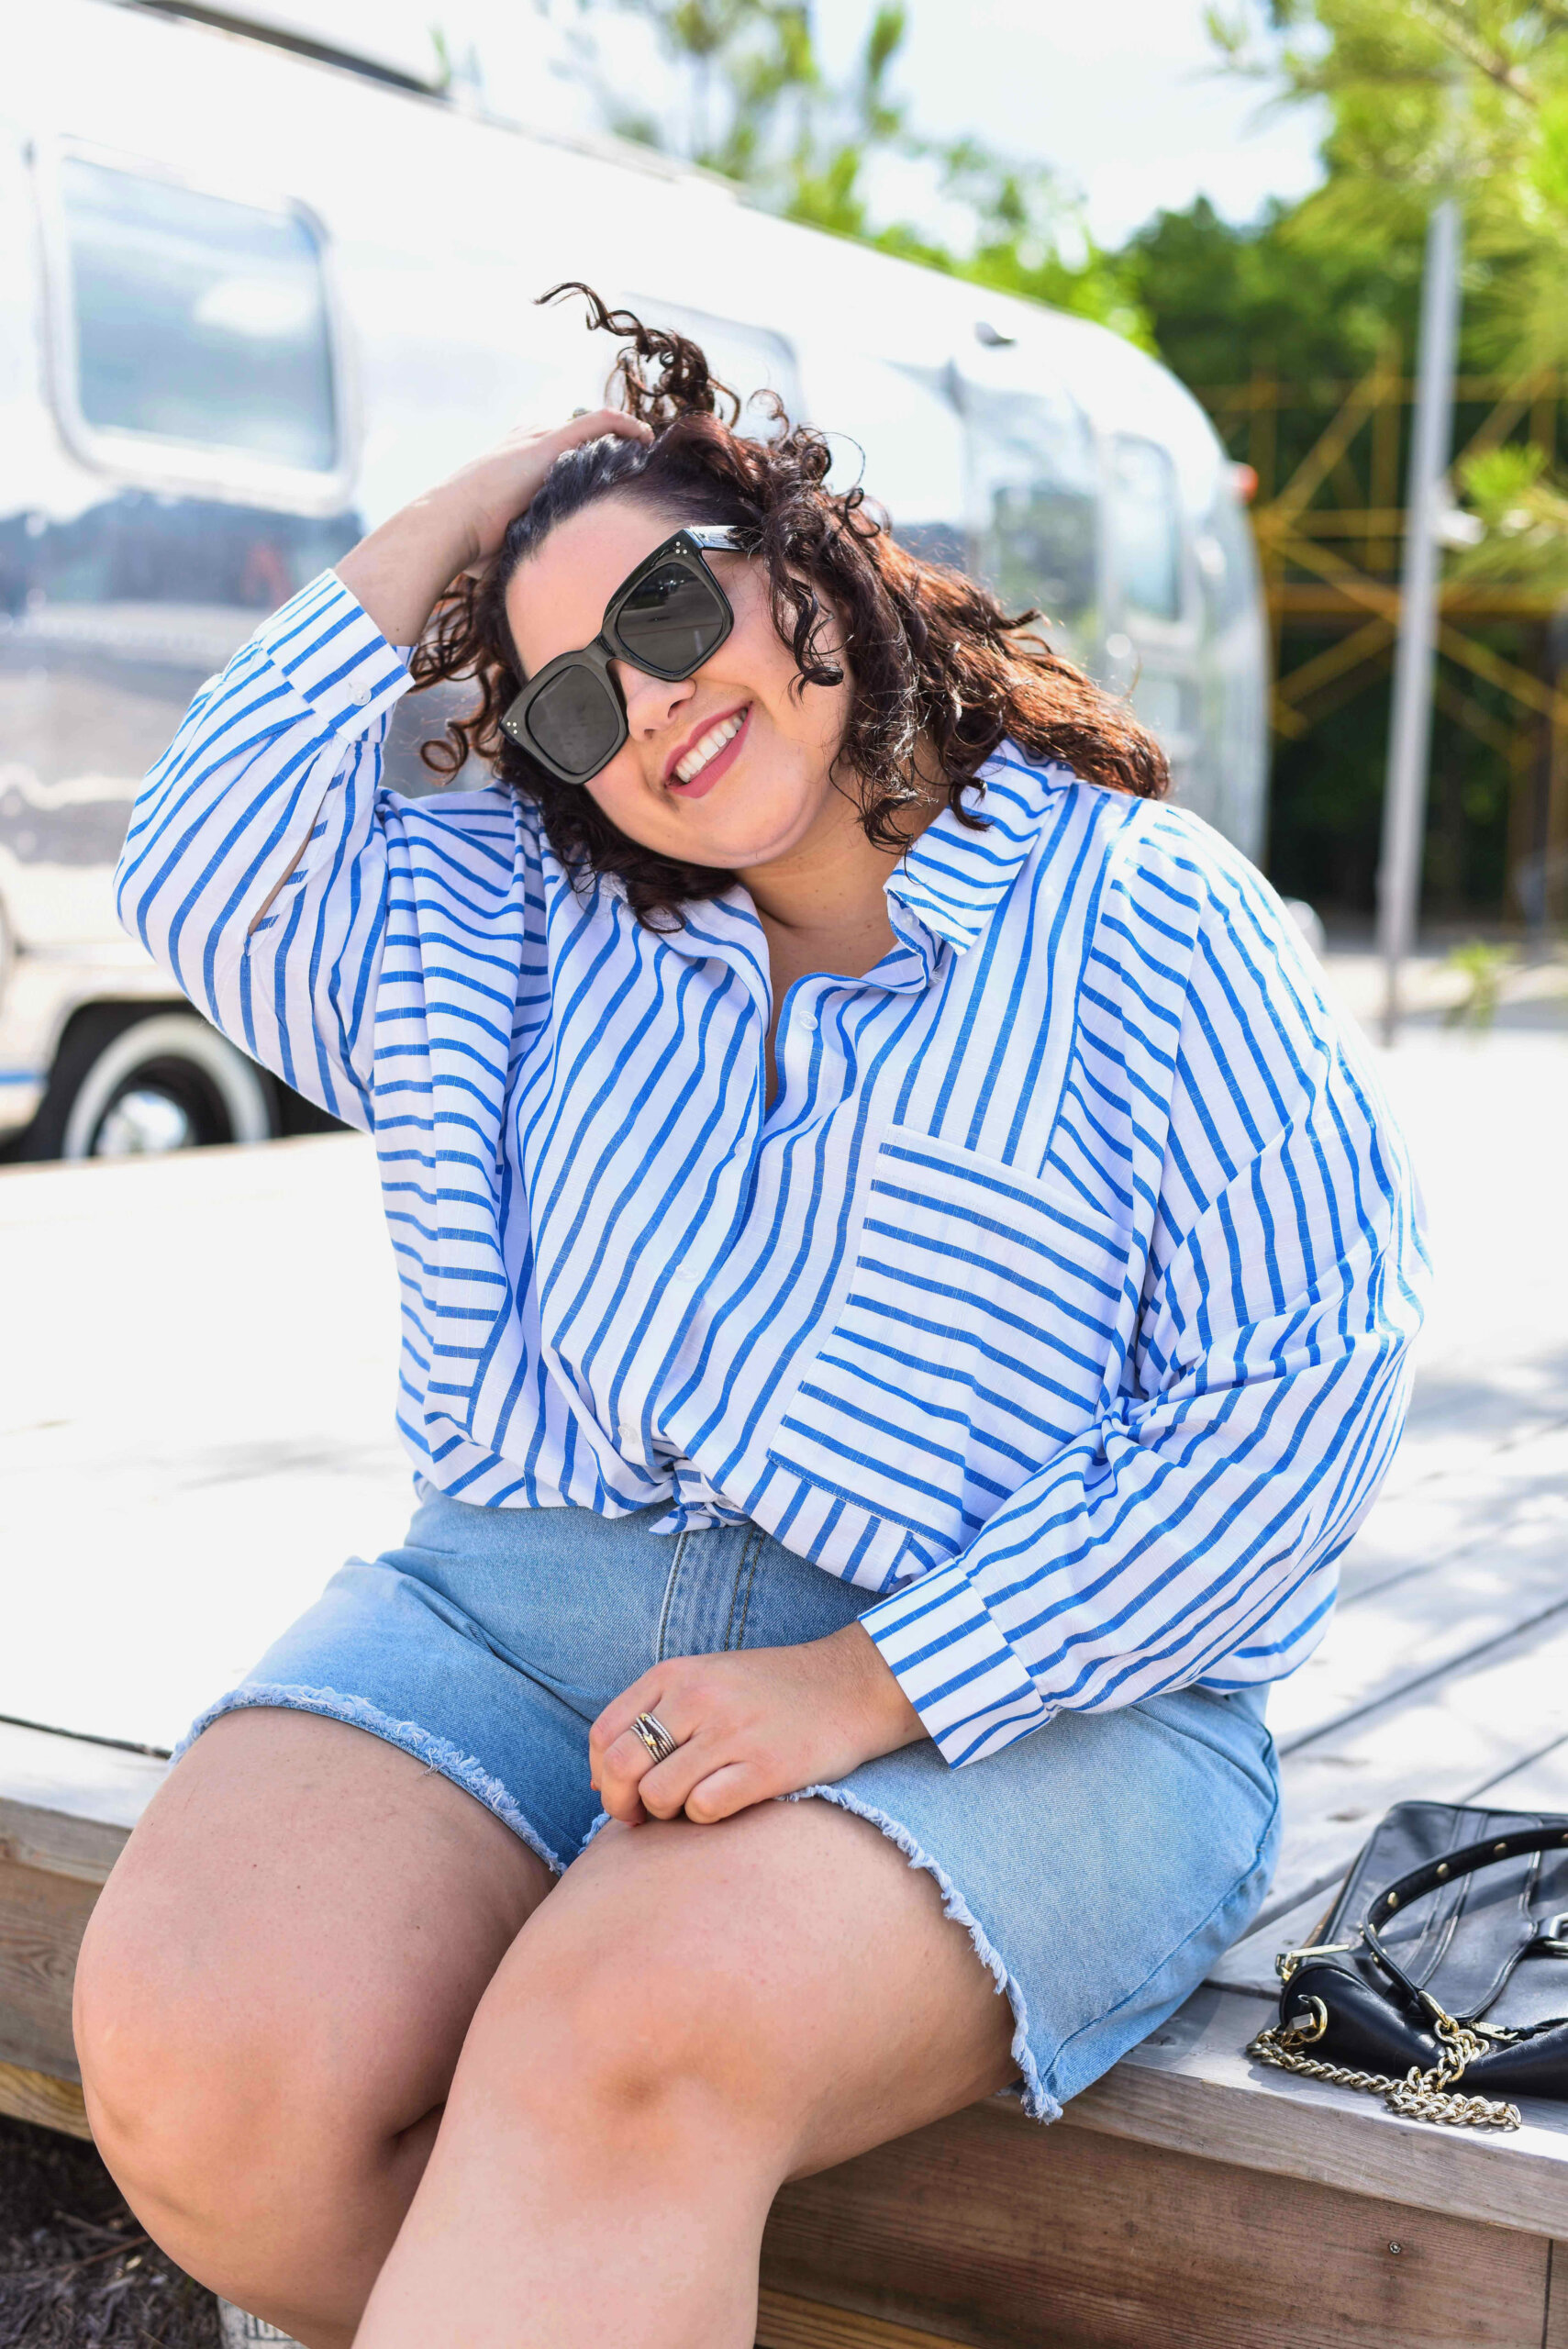 Being plus size does not mean you shouldn't wear the shorts of your summer girl dreams